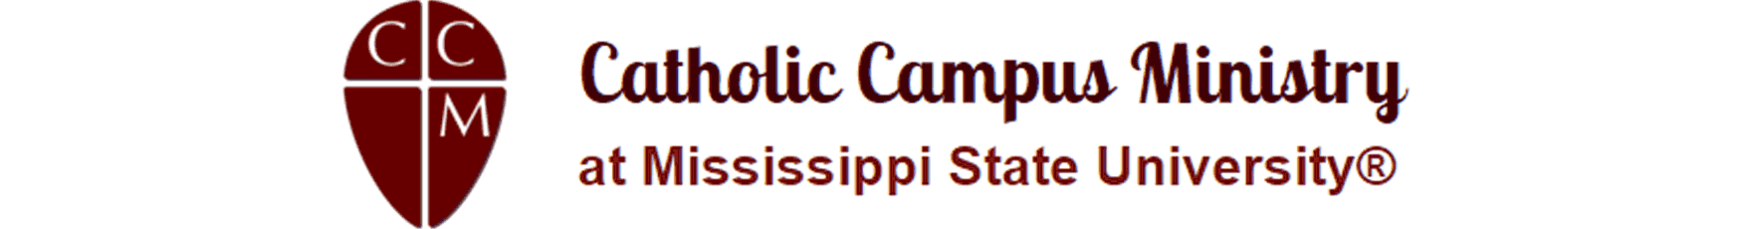 Catholic Campus Ministry MSSTATE